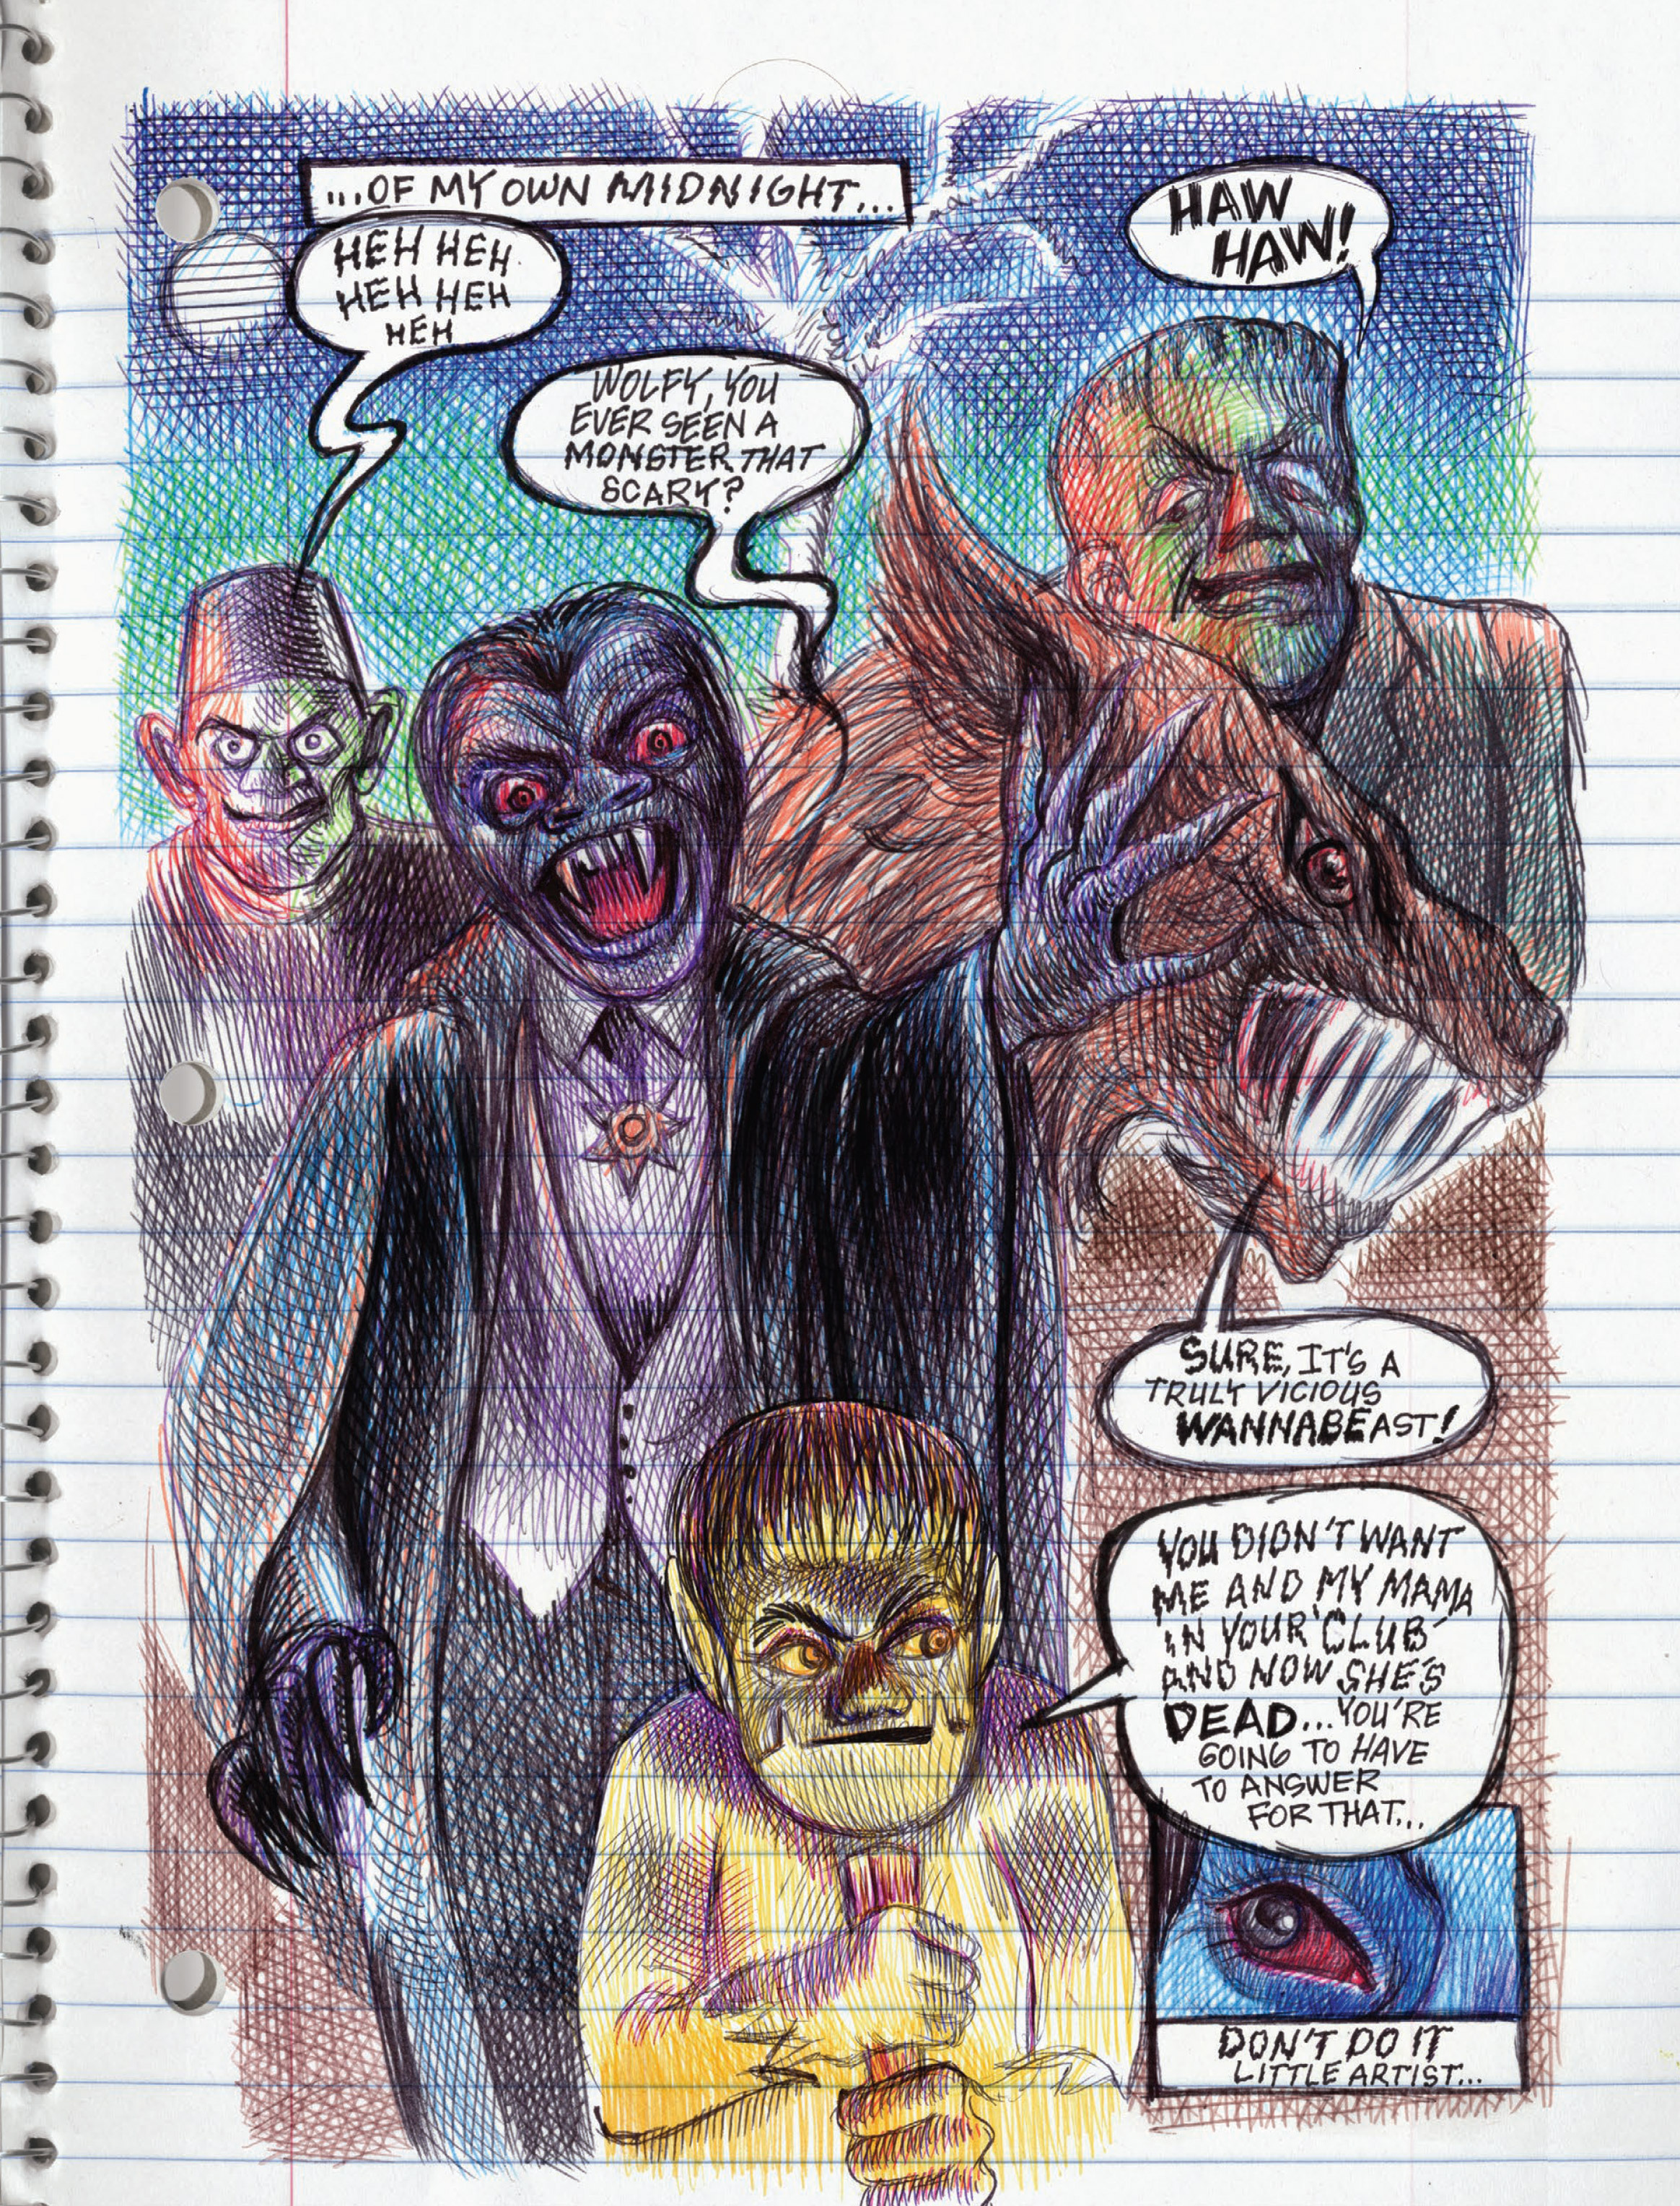 Read online My Favorite Thing is Monsters comic -  Issue #1.5 - 189